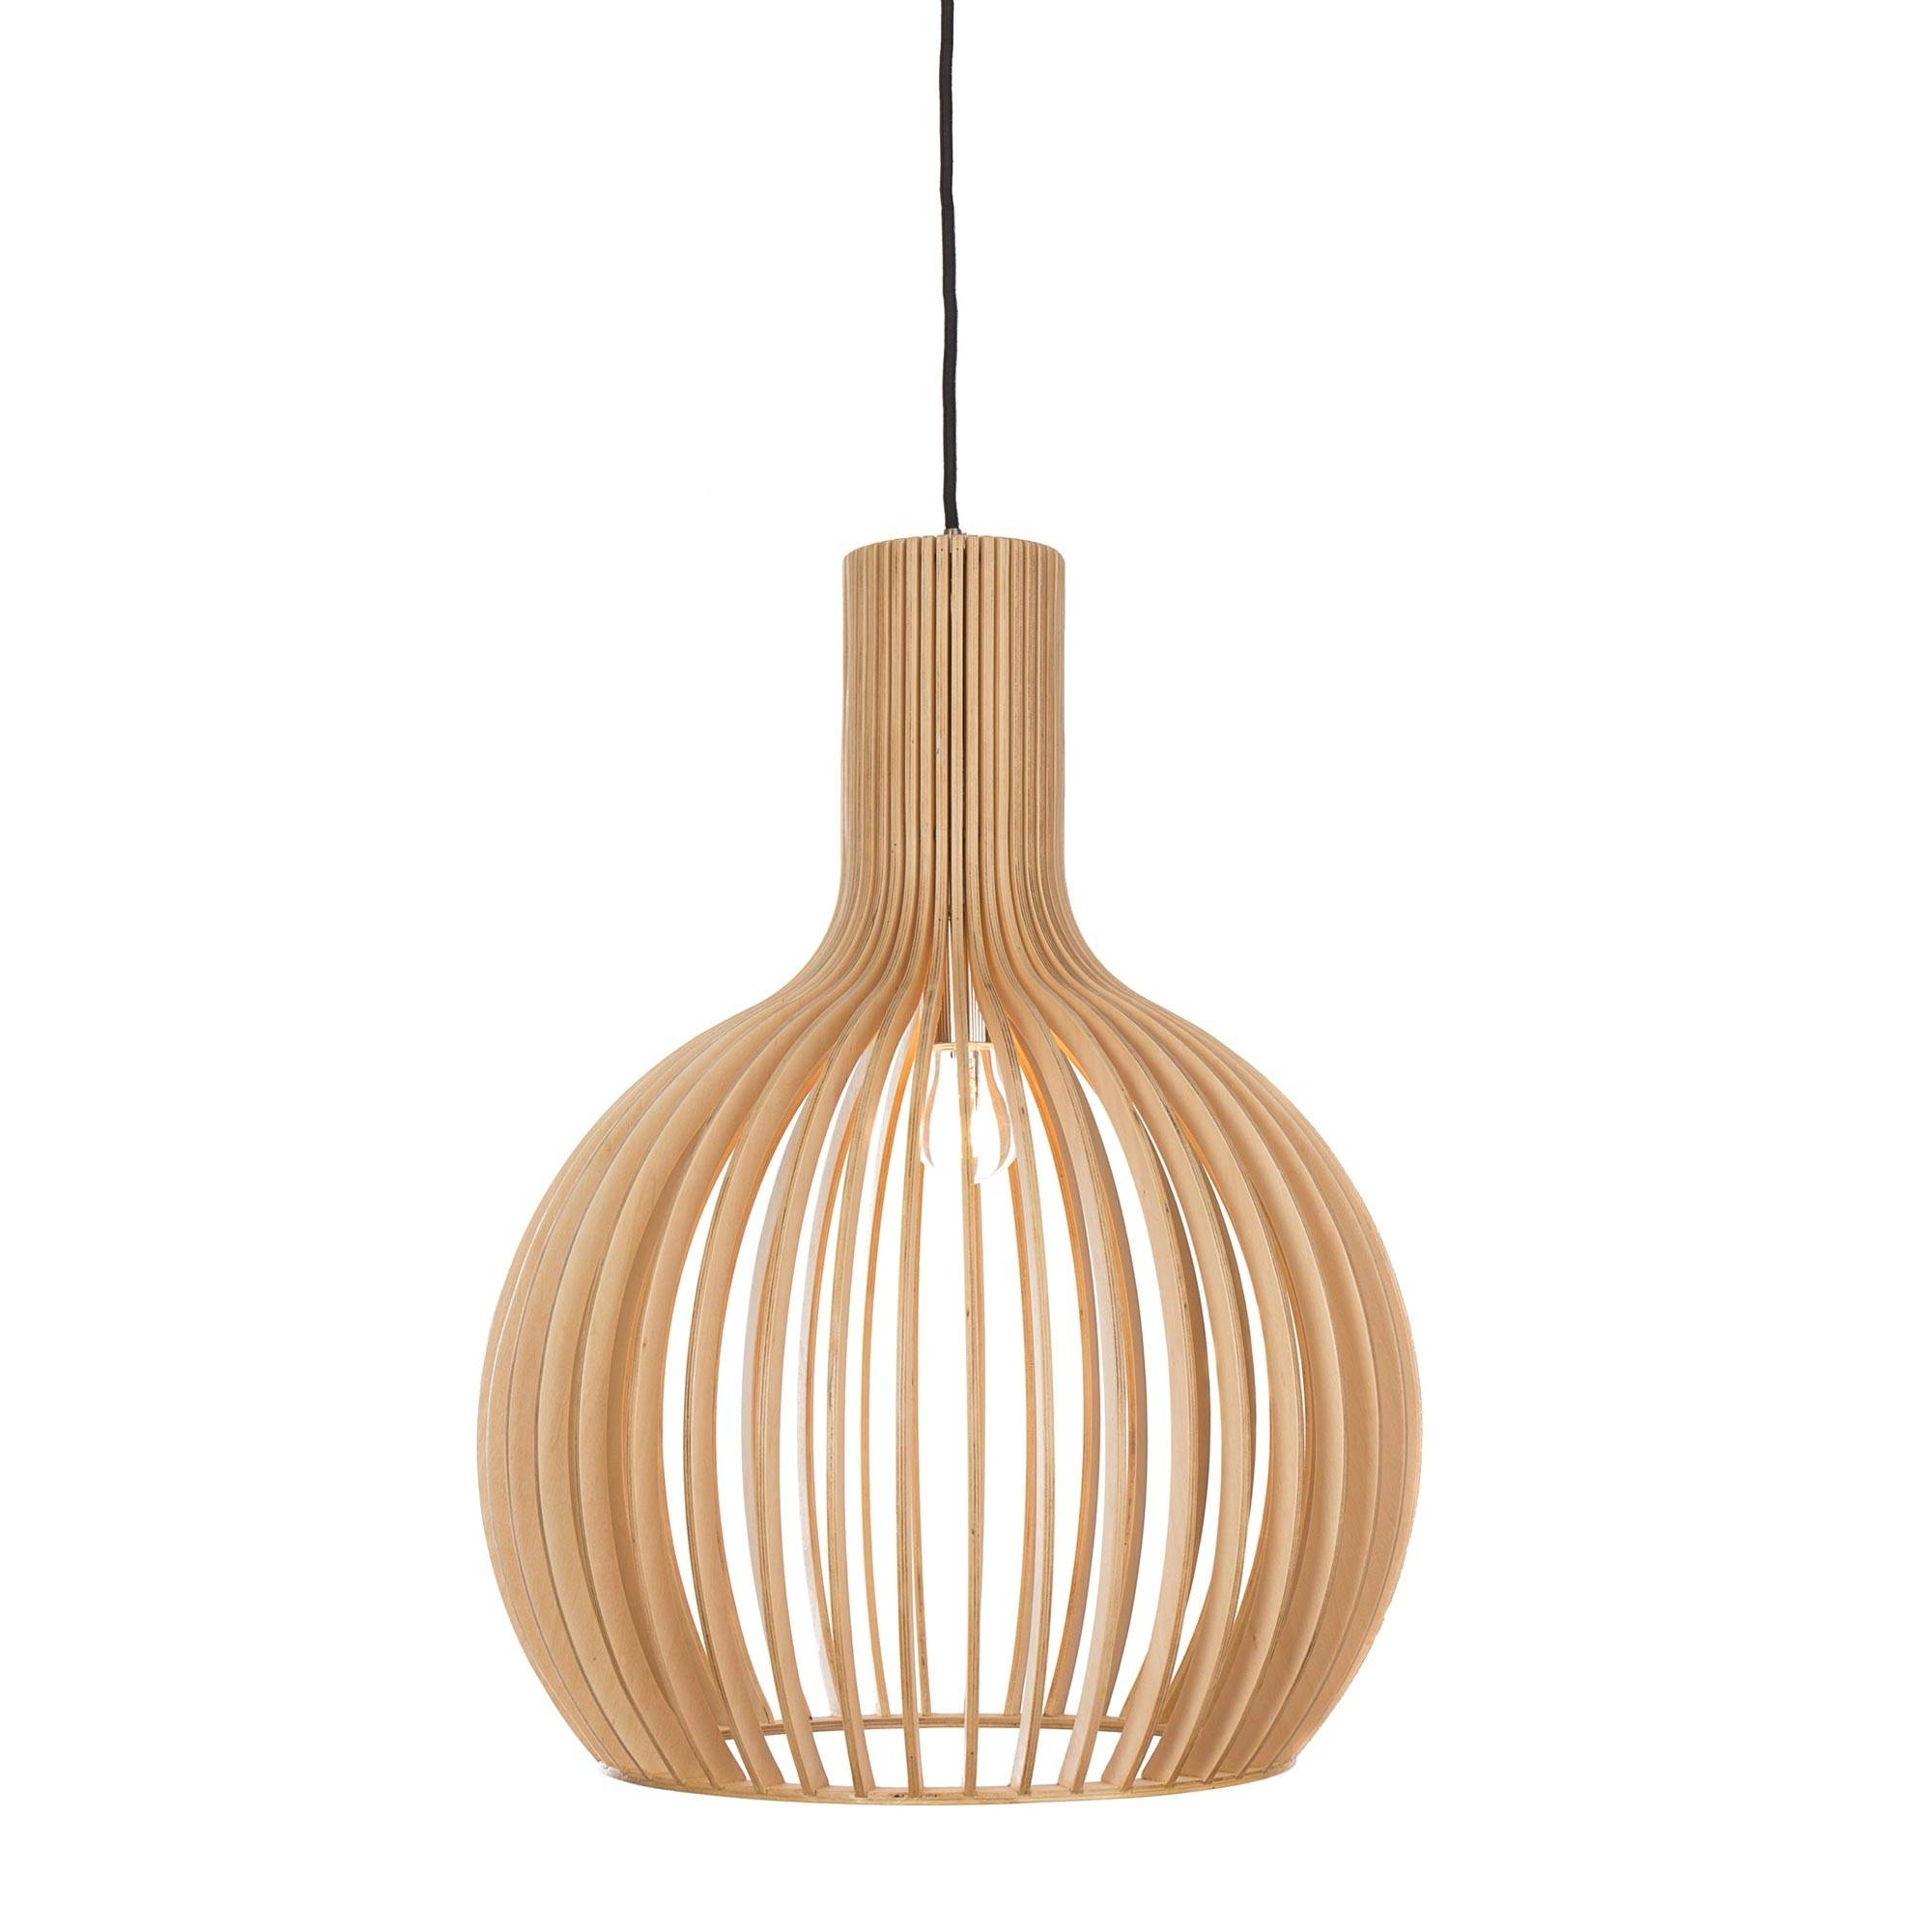 Excellent Wooden Pendant Lights 43 Wood Pendant Lights Nz Malmo for Wooden Pendant Lights Melbourne (Image 8 of 15)